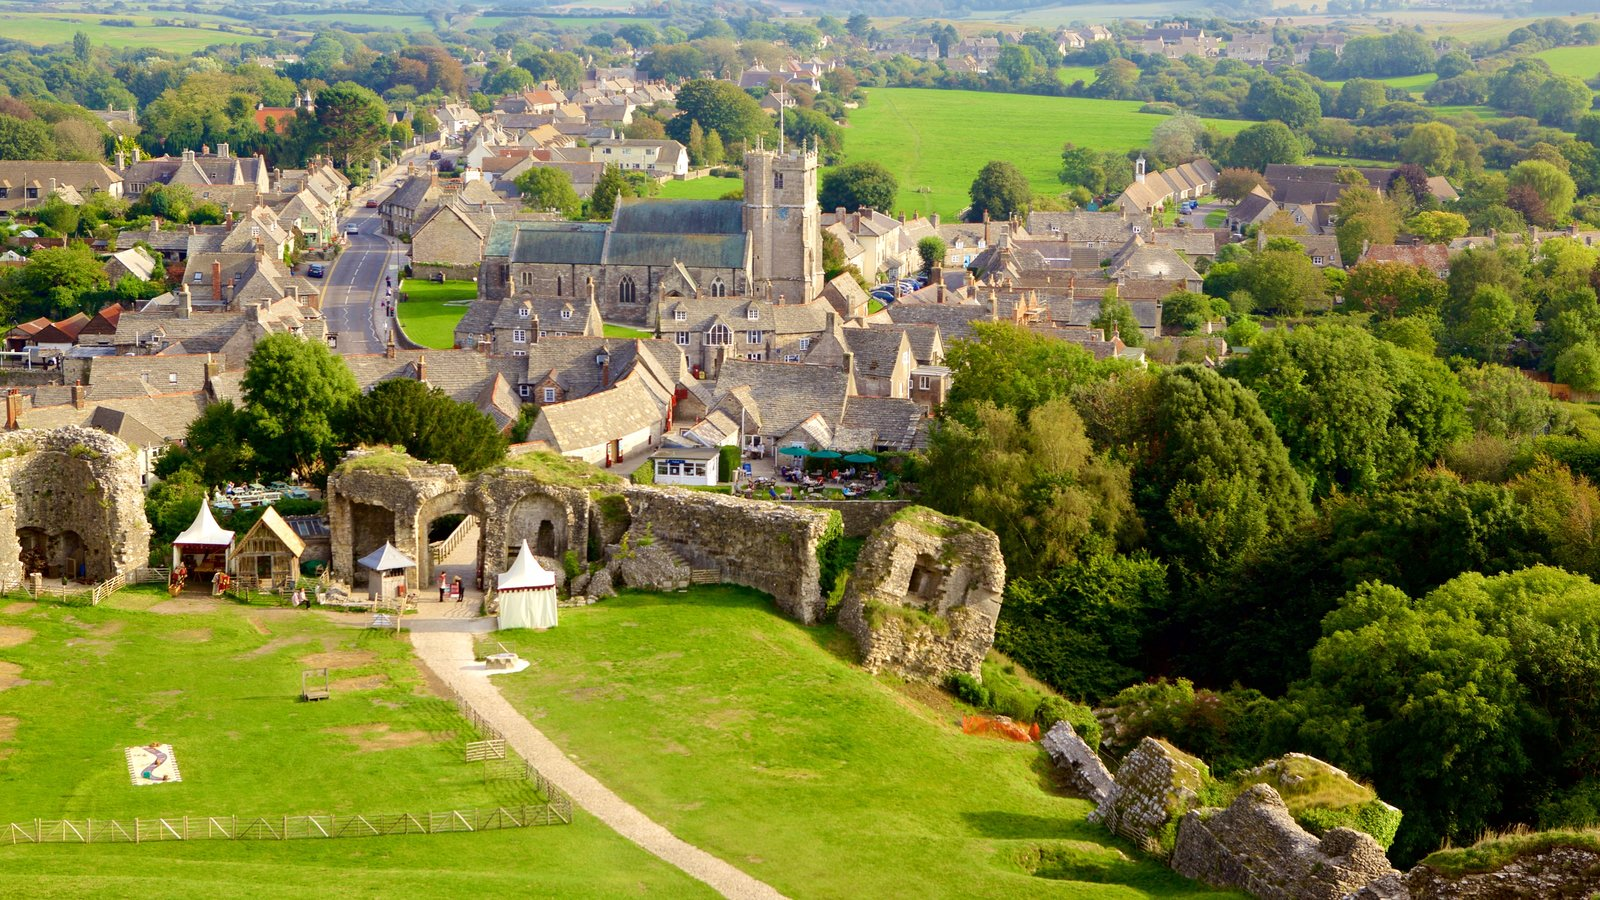 Corfe Castle showing a small town or village